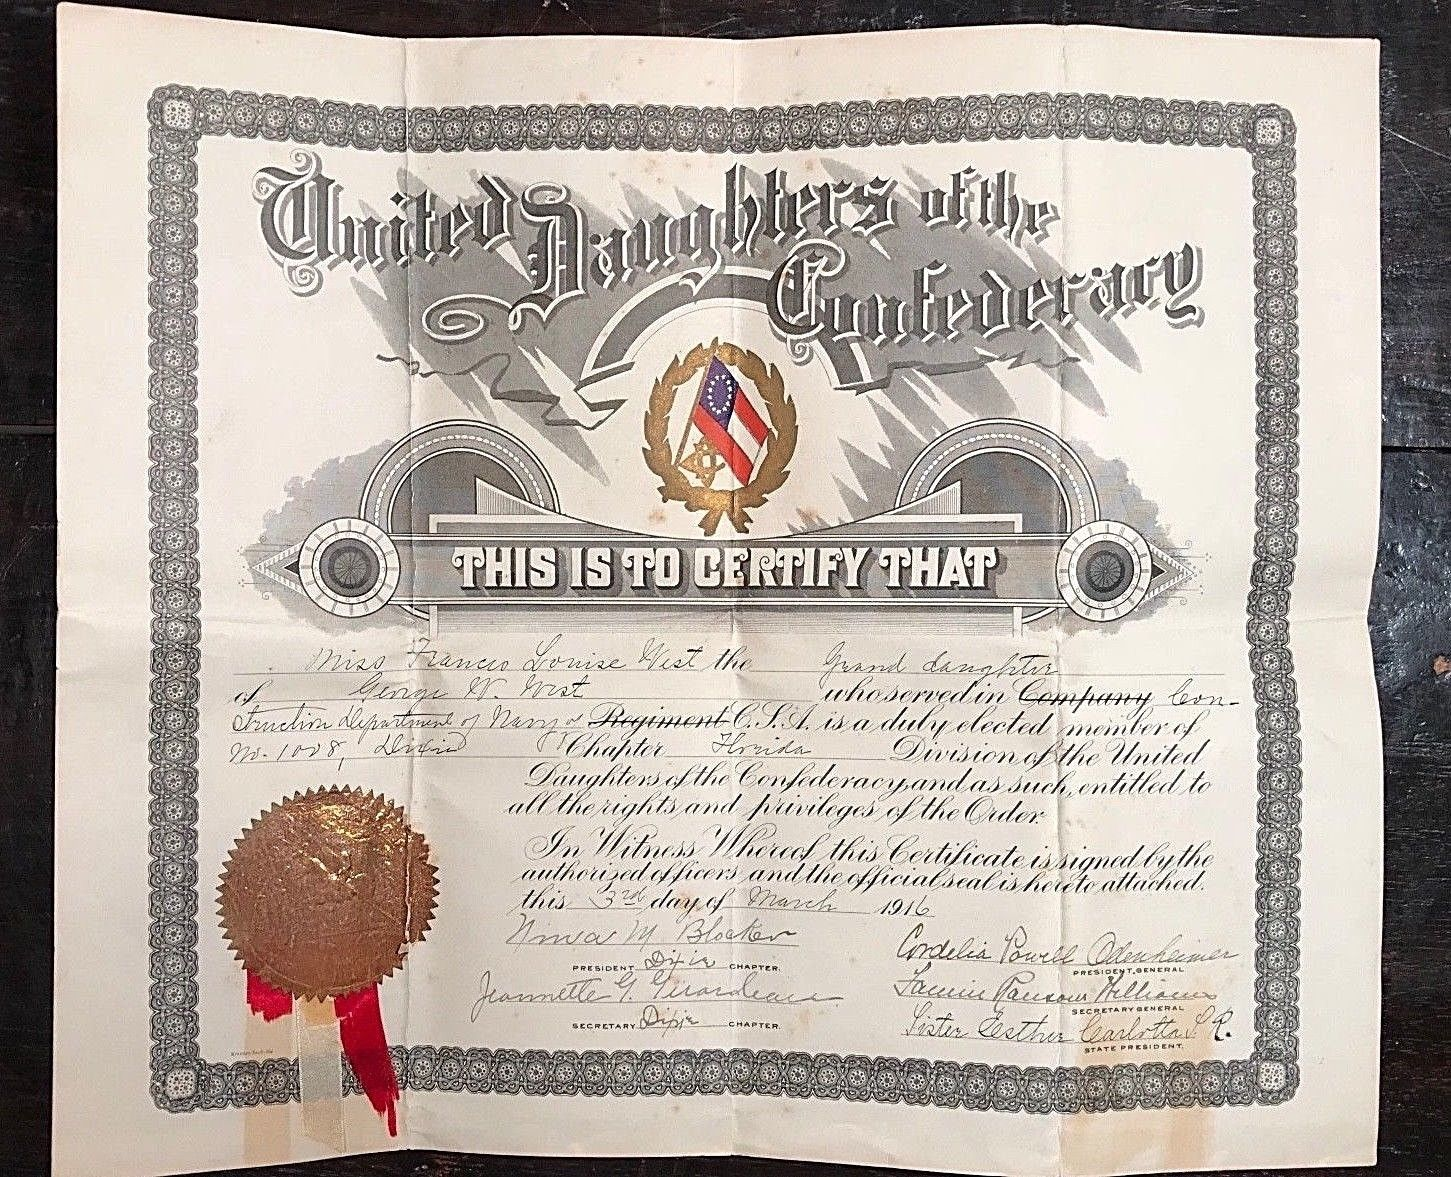 1916 United Daughters of the Confederacy Membership Certificate - George W. West